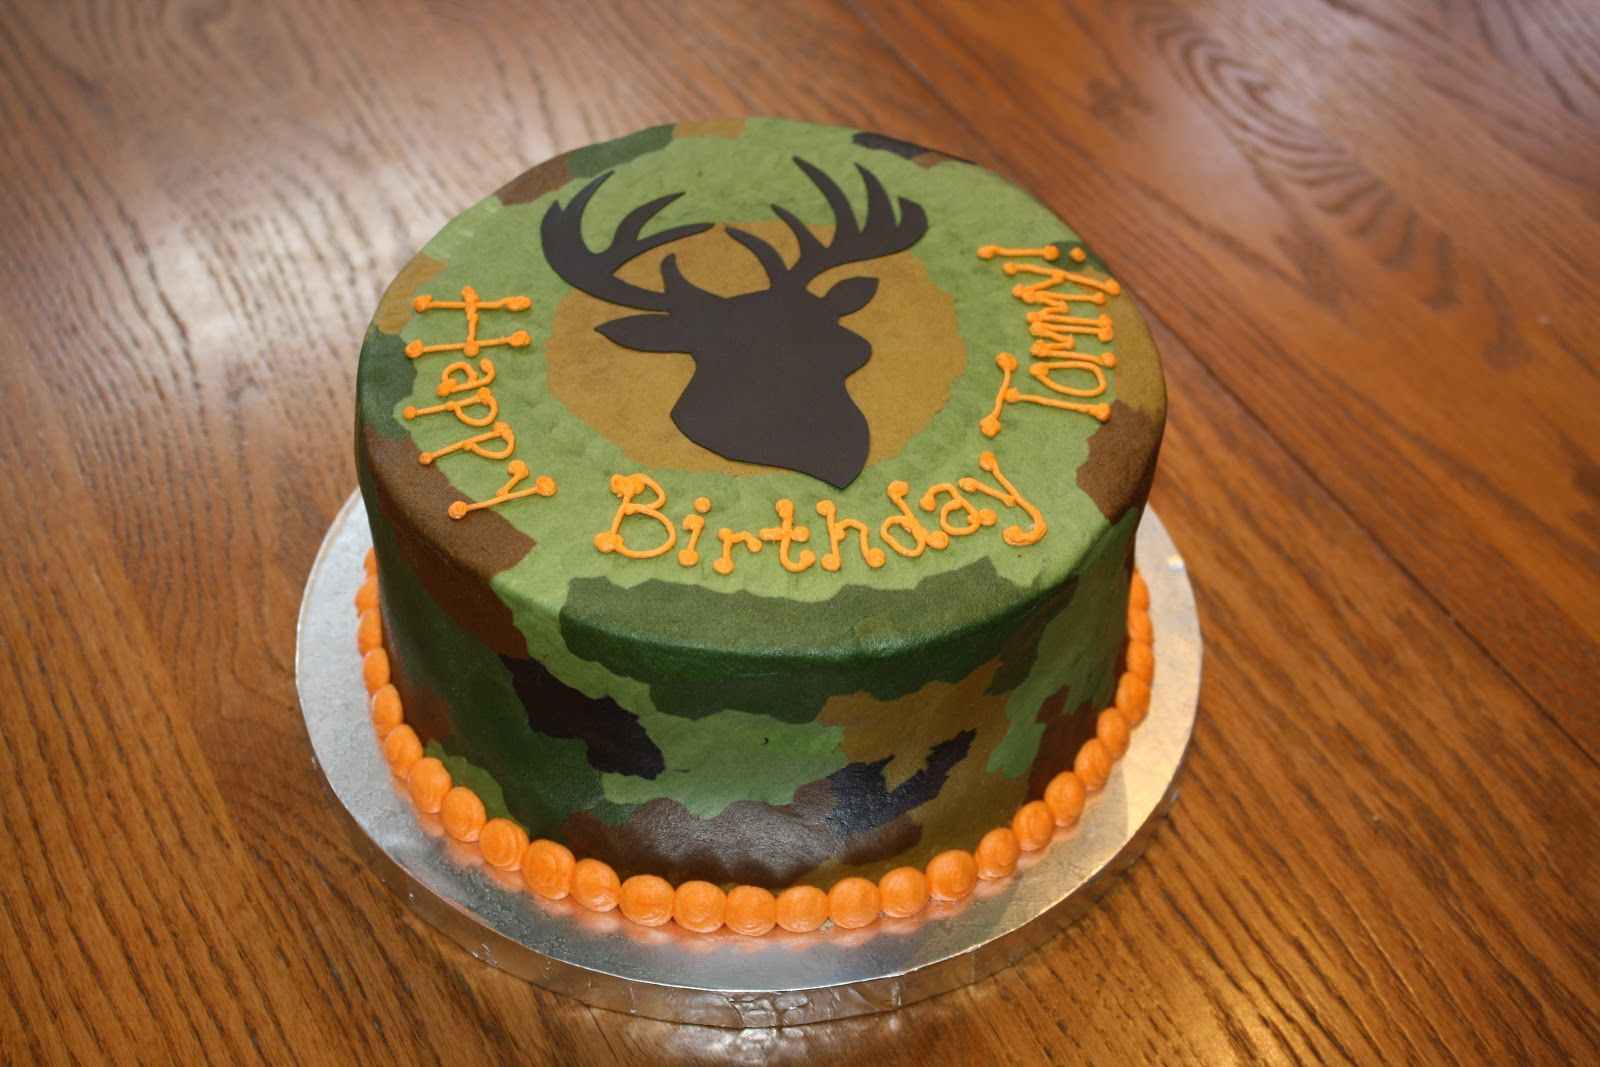 Astonishing Camouflage Cake Hunting Cake Deer Cakes Hunting Birthday Cakes Funny Birthday Cards Online Overcheapnameinfo